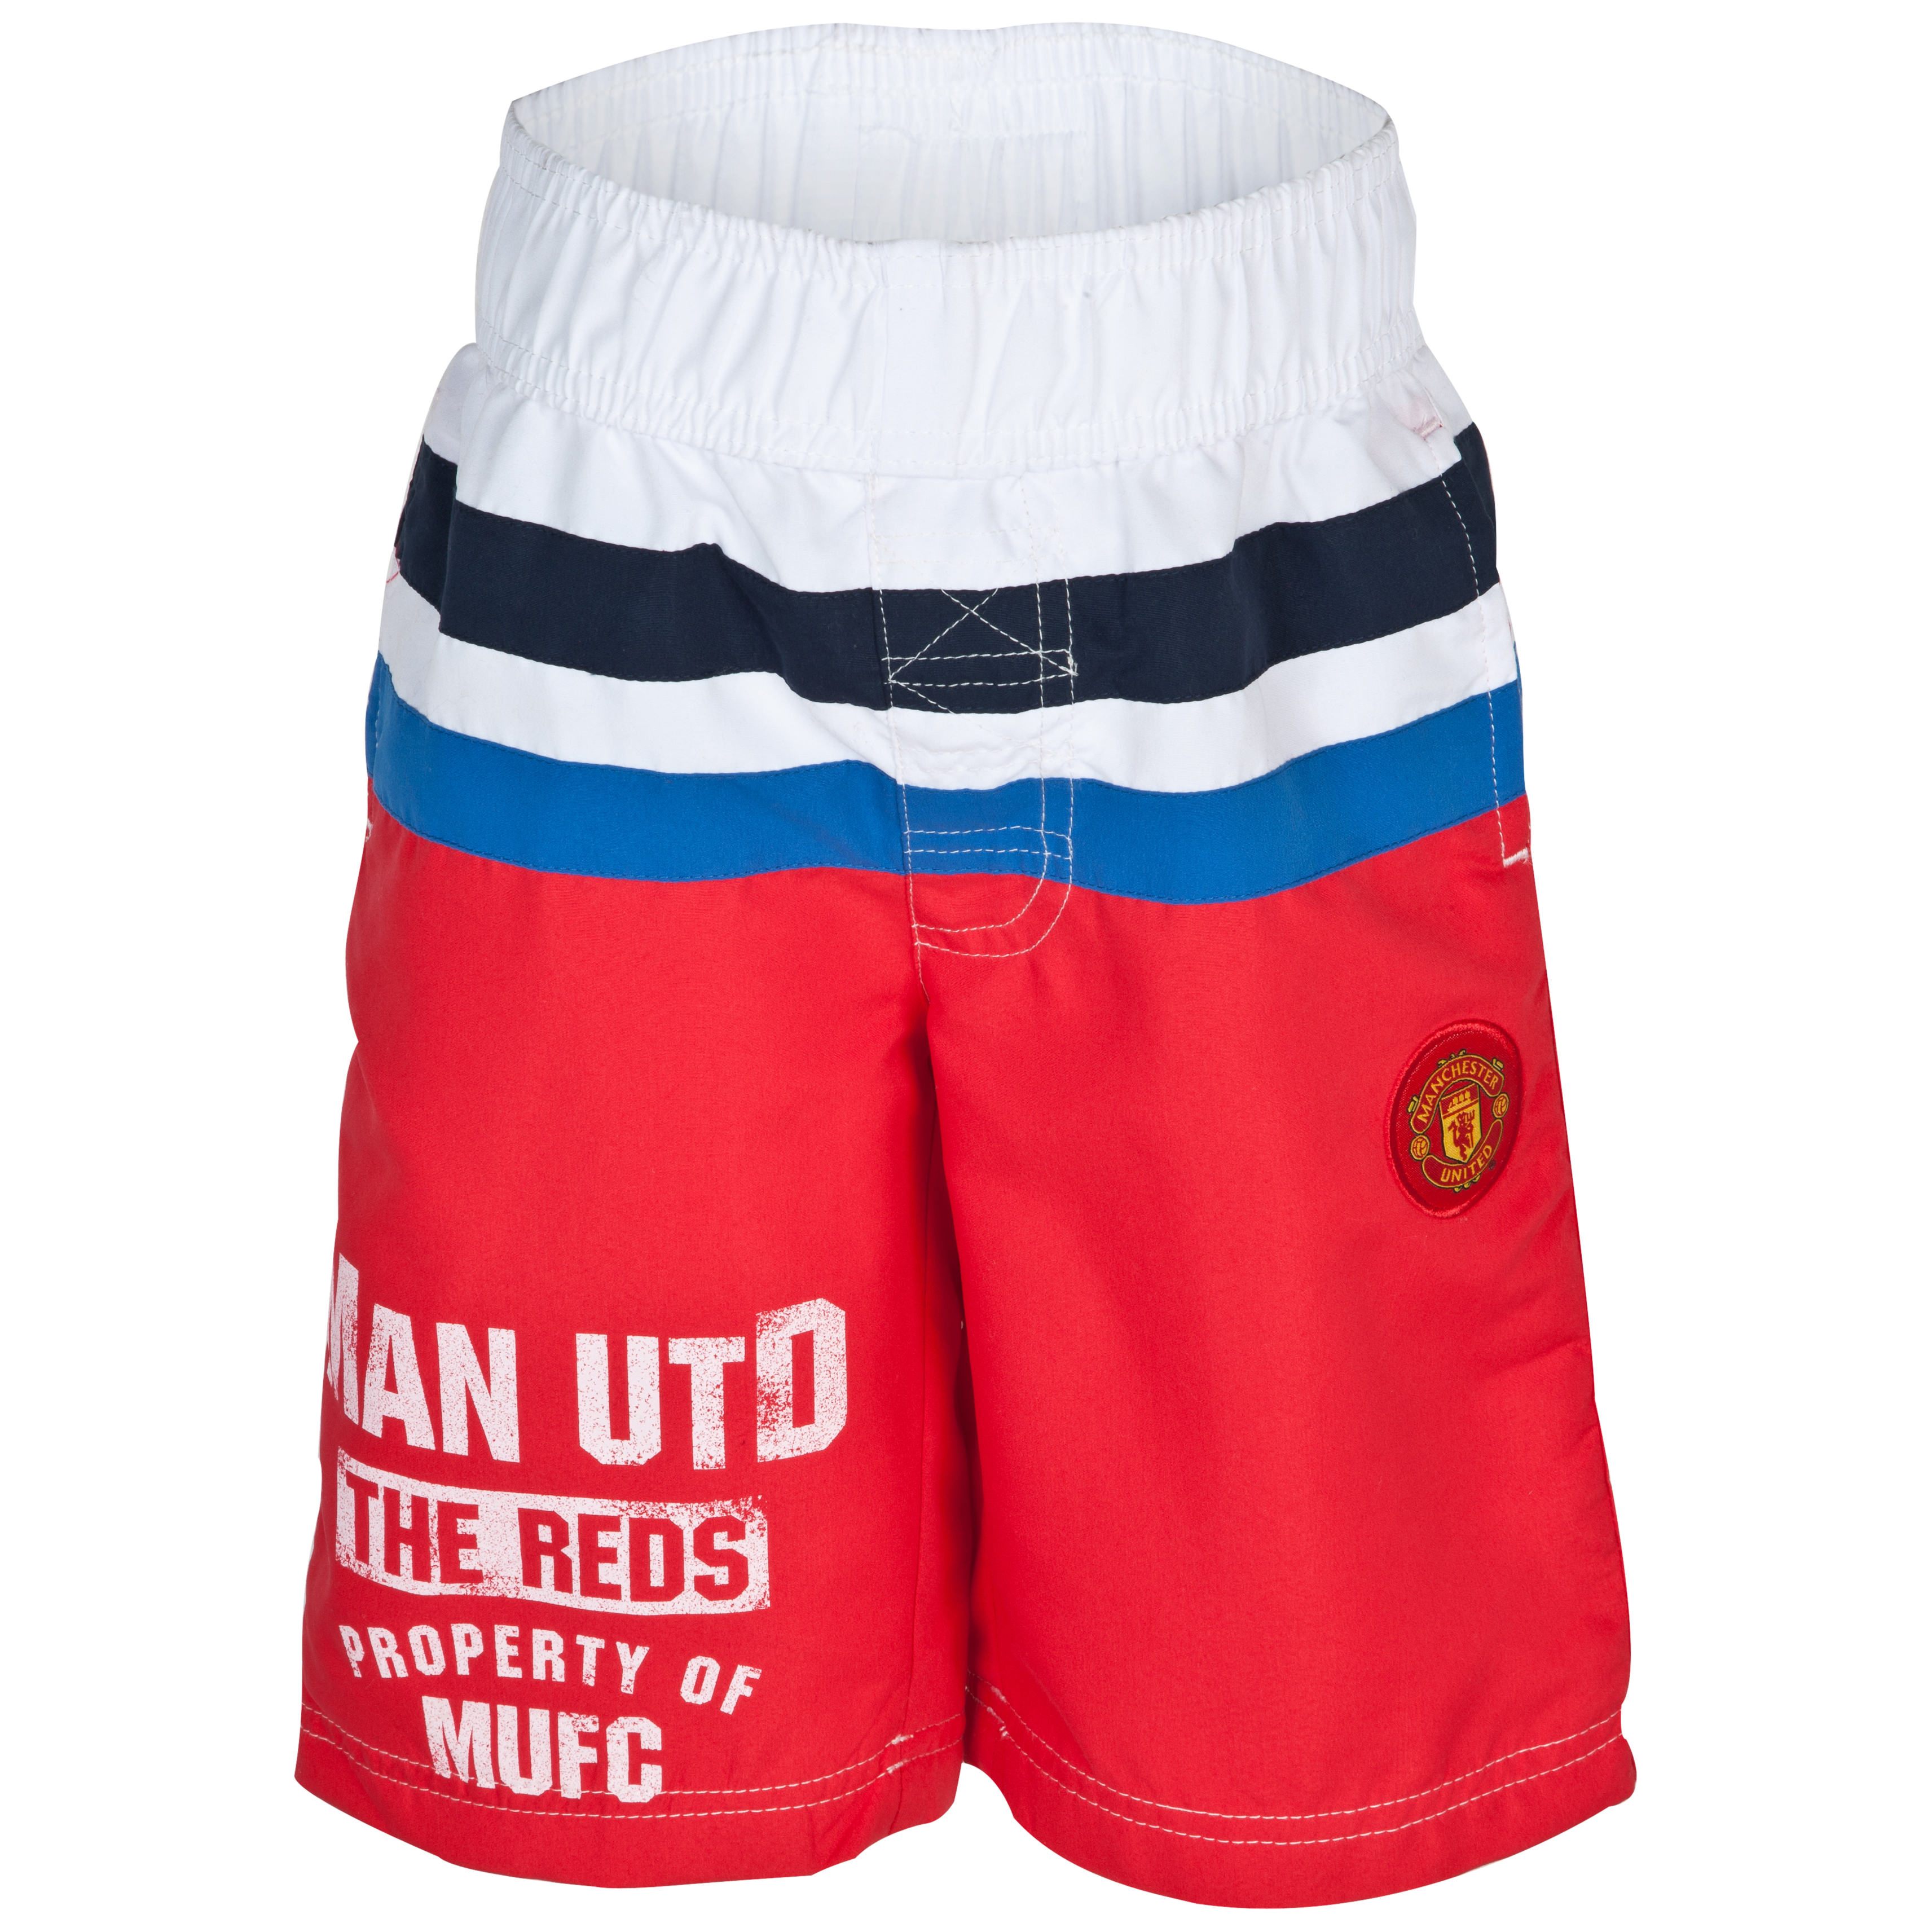 Manchester United The Reds Woven Board Shorts - OT Red - Infant Boys